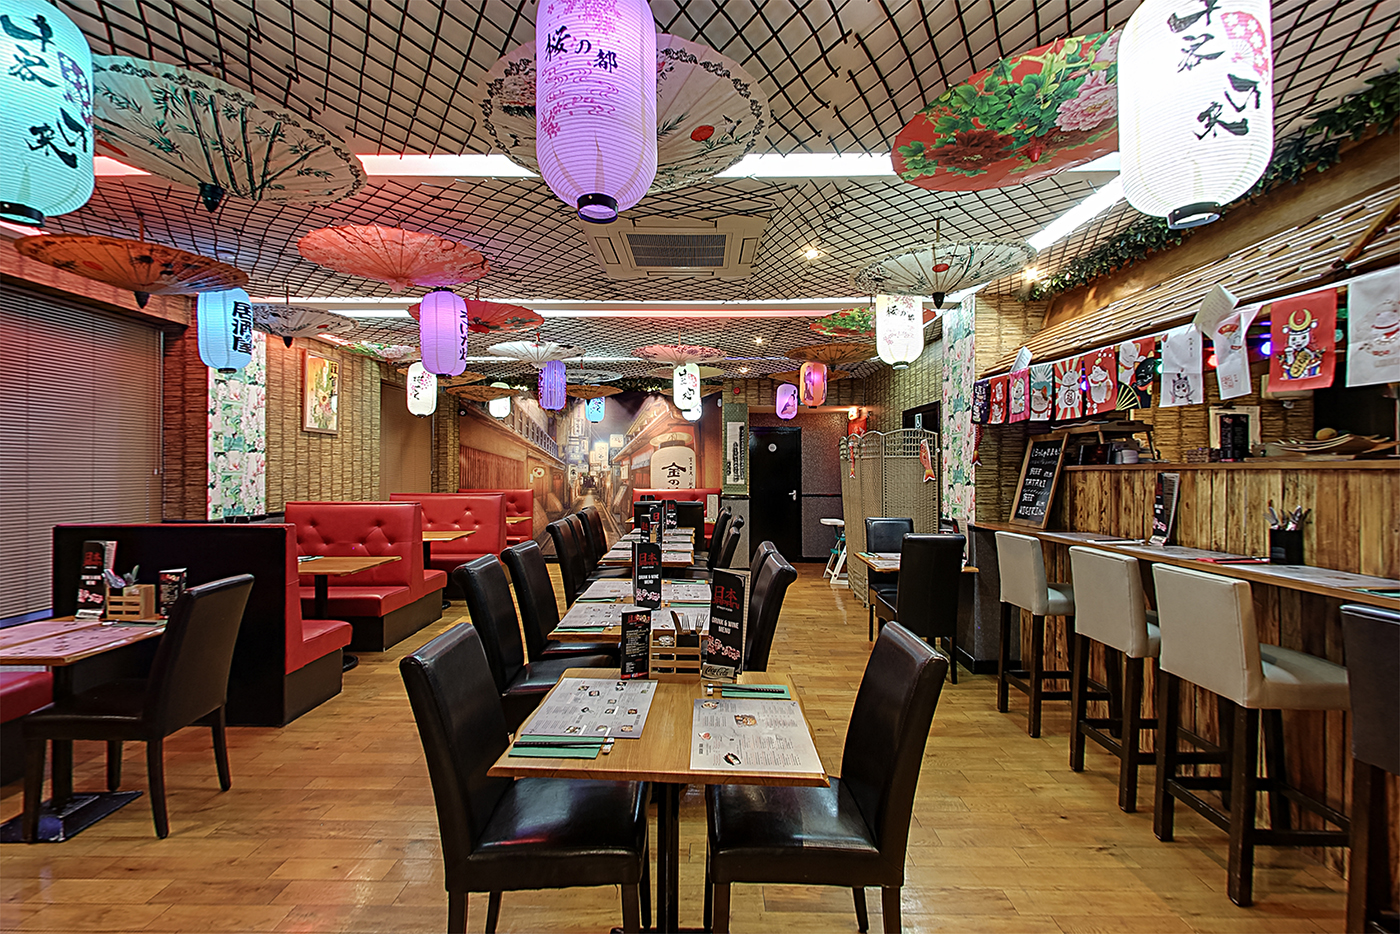 Restaurant Interior at Japan Street Food Paisley